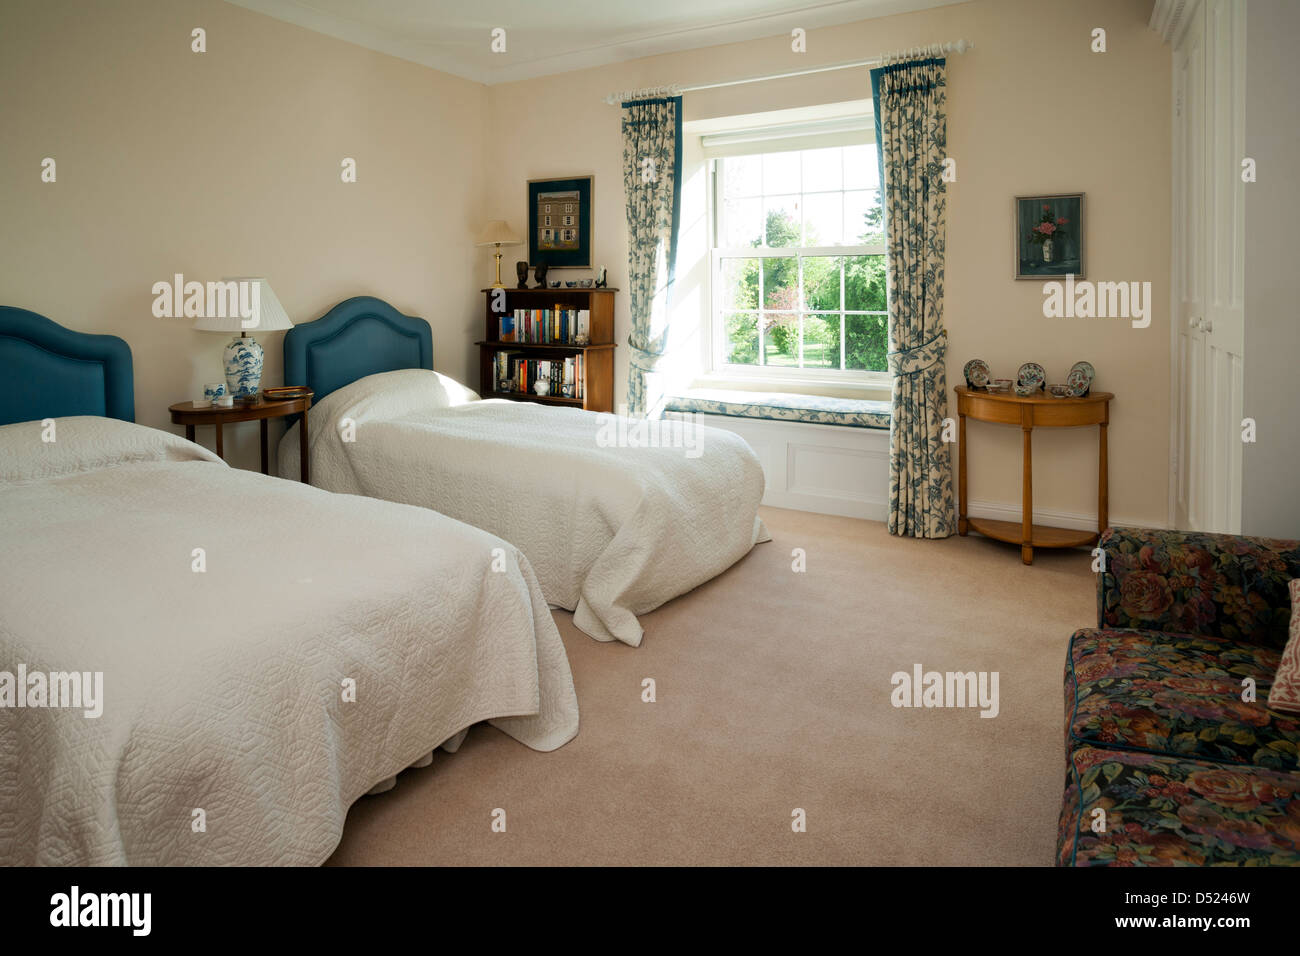 Stock Photo   Two single beds a guest bedroom. Two single beds a guest bedroom Stock Photo  Royalty Free Image